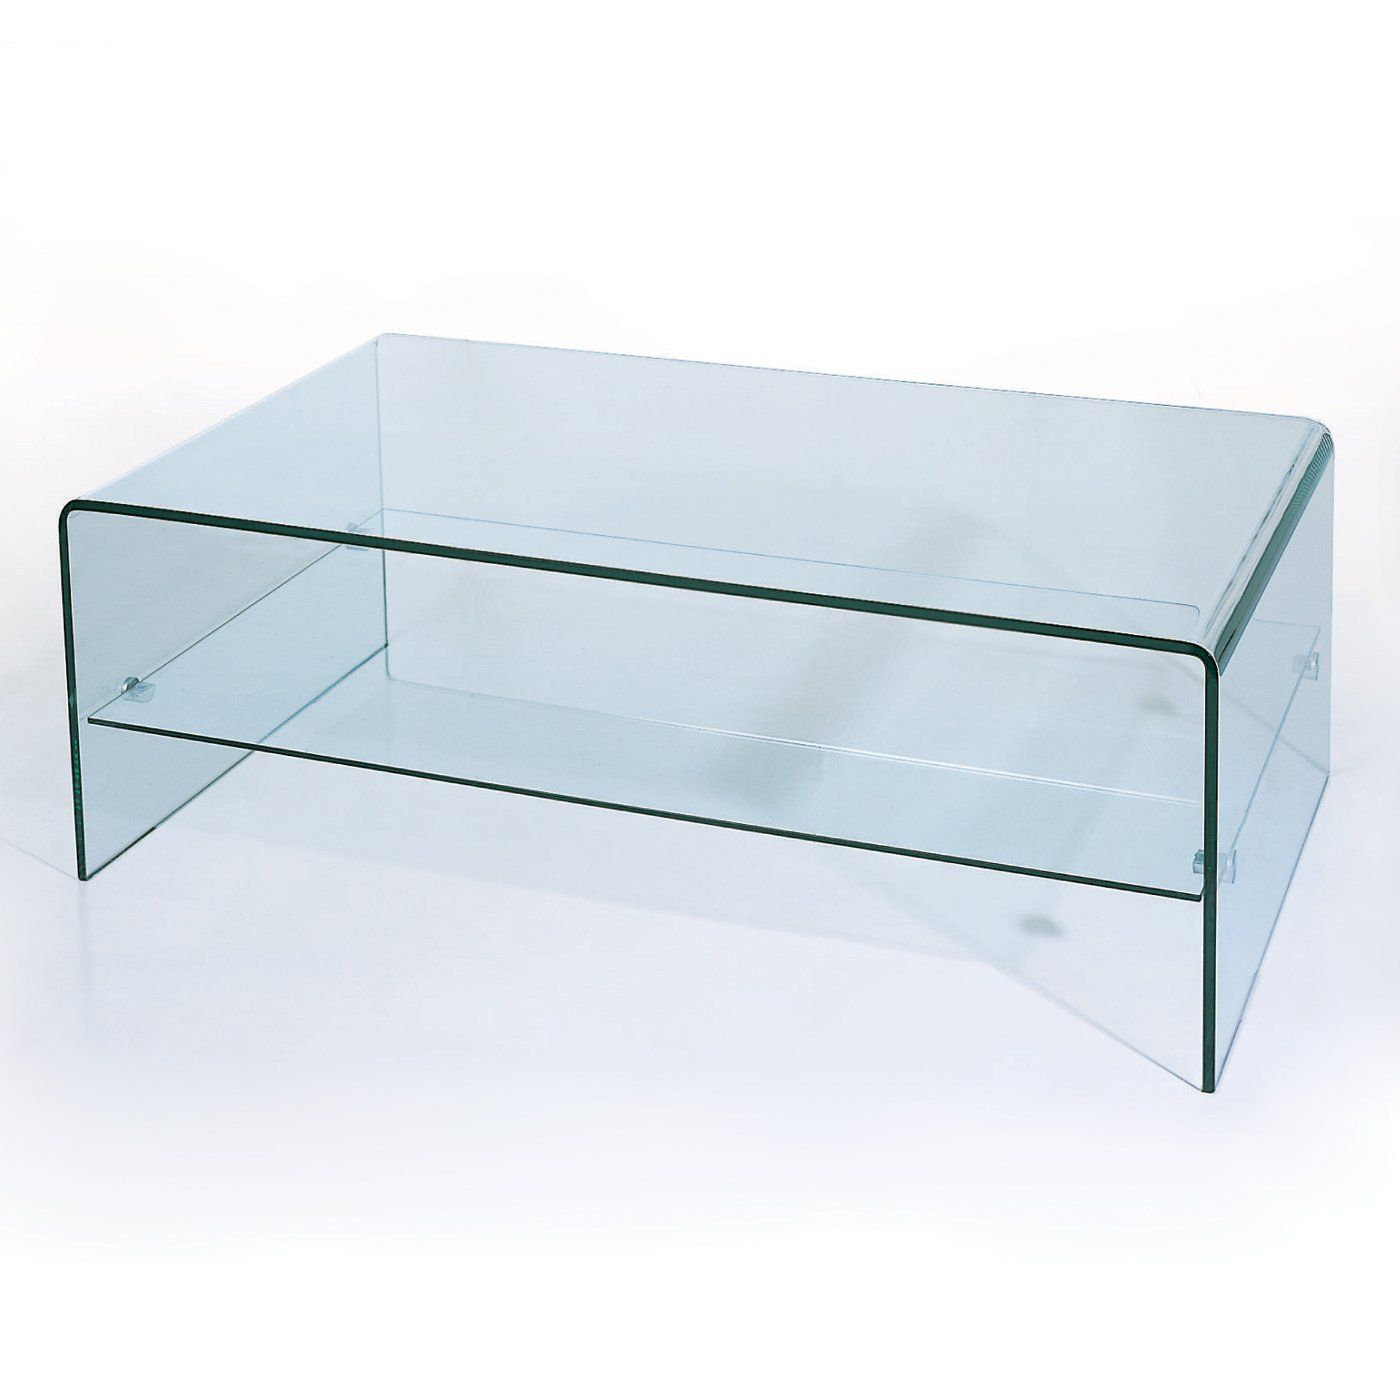 BH Design C26 Waterfall Bent Glass Coffee Table $448 36 16 5